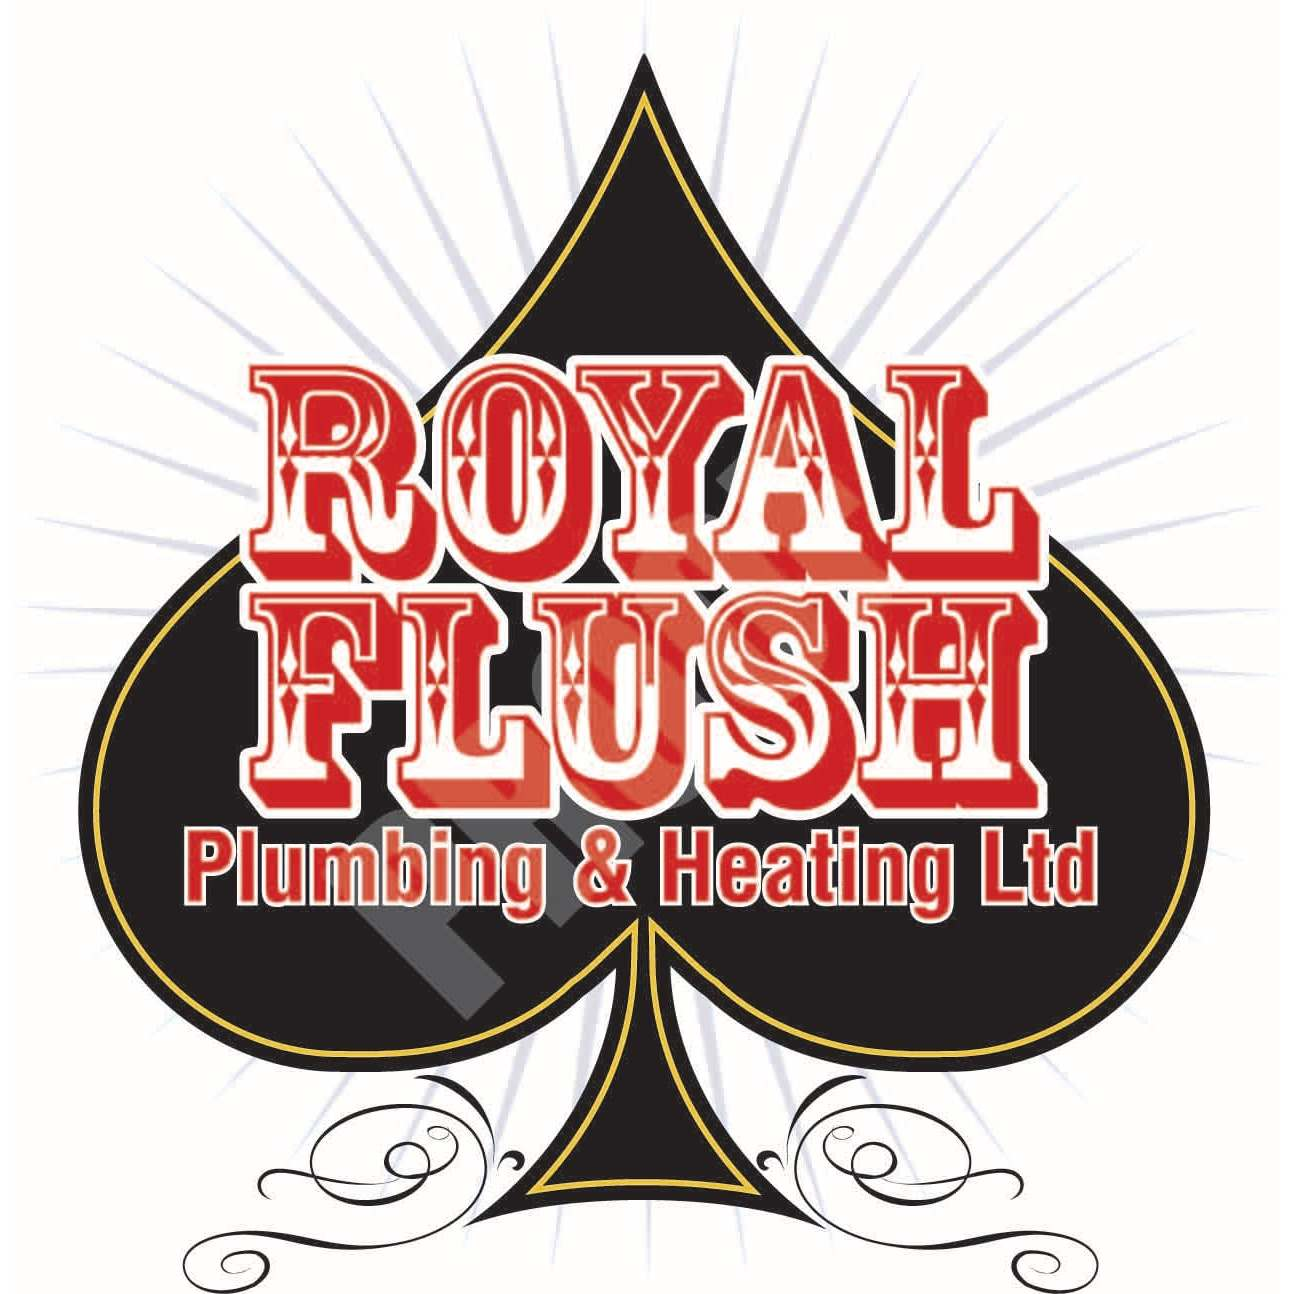 Royal Flush Plumbing - Redhill, Surrey RH1 1JW - 07825 598329 | ShowMeLocal.com